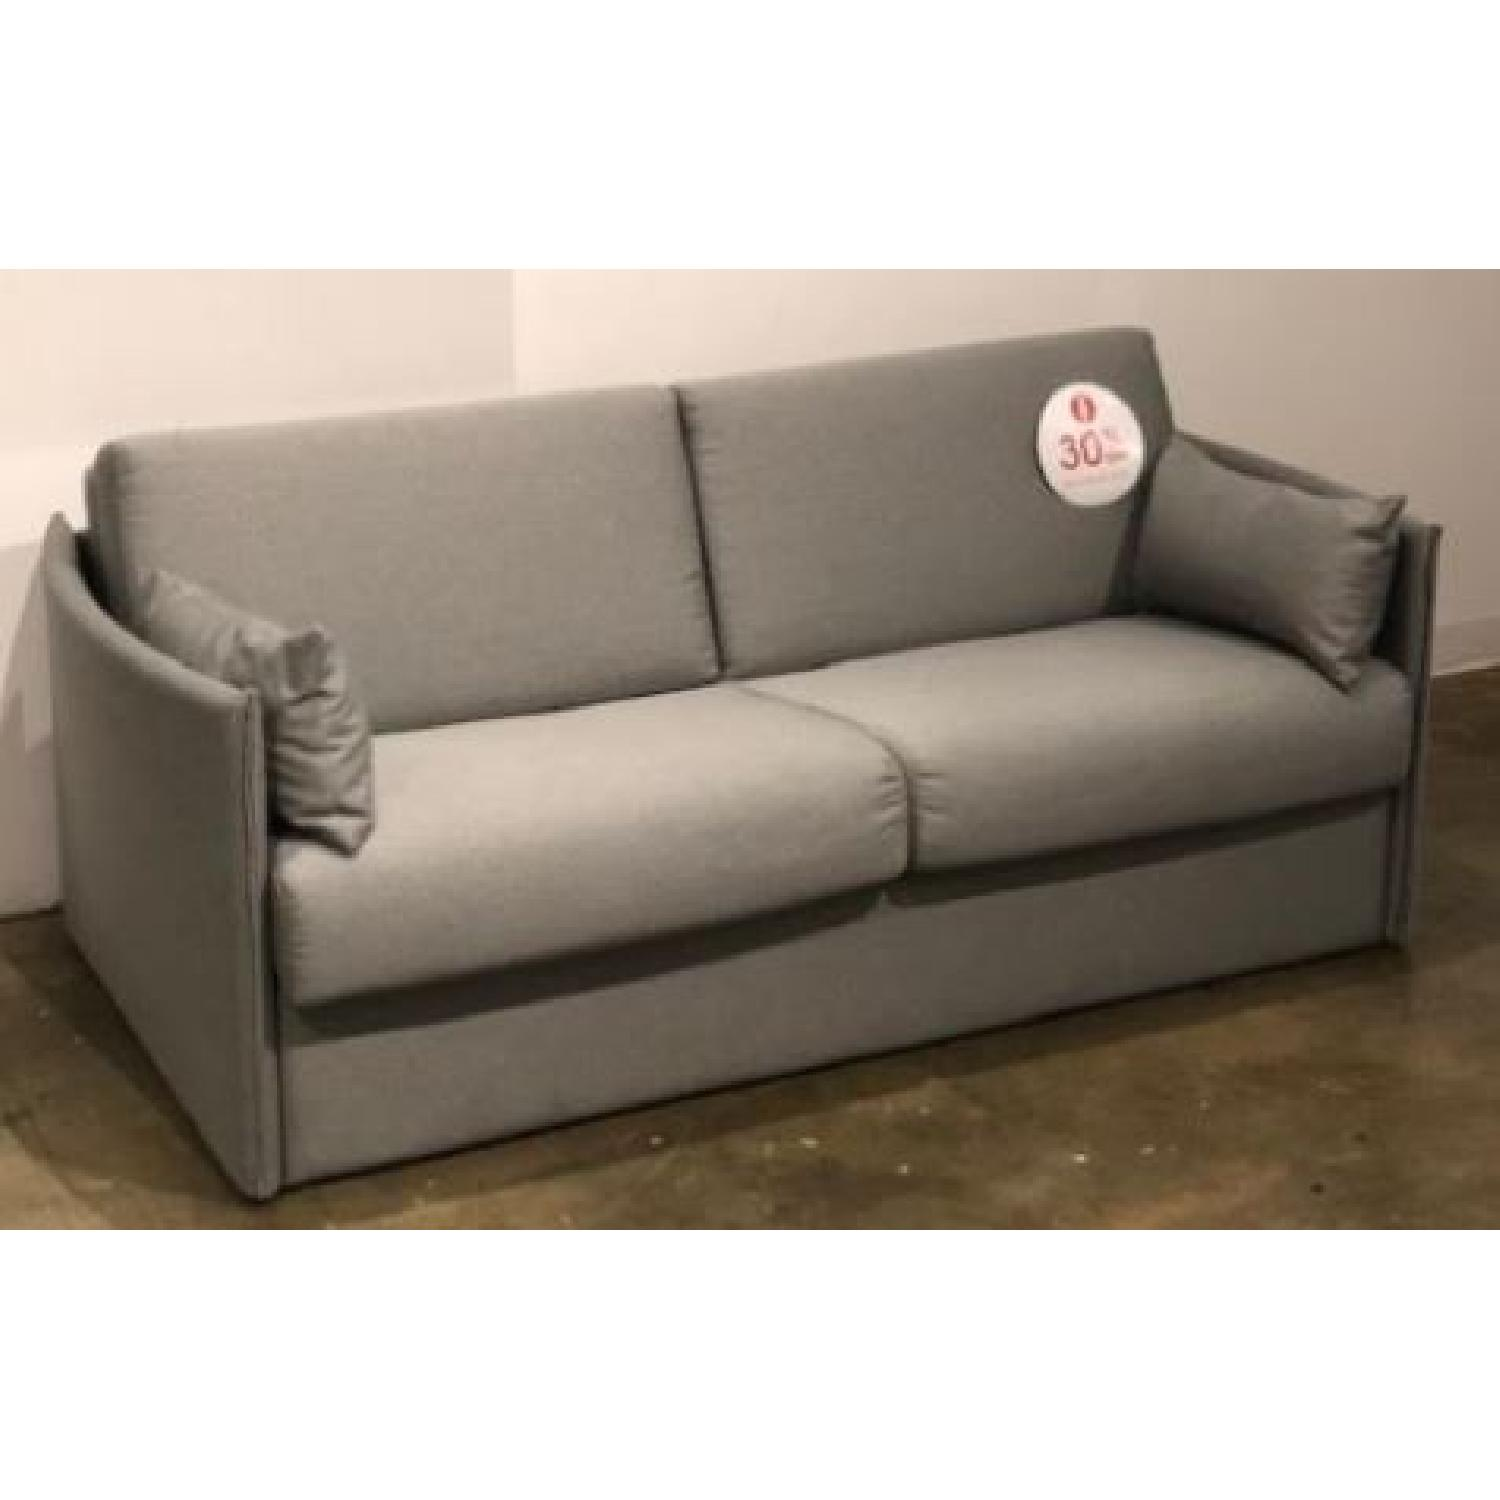 Calligaris Urban Sofa Bed - image-5